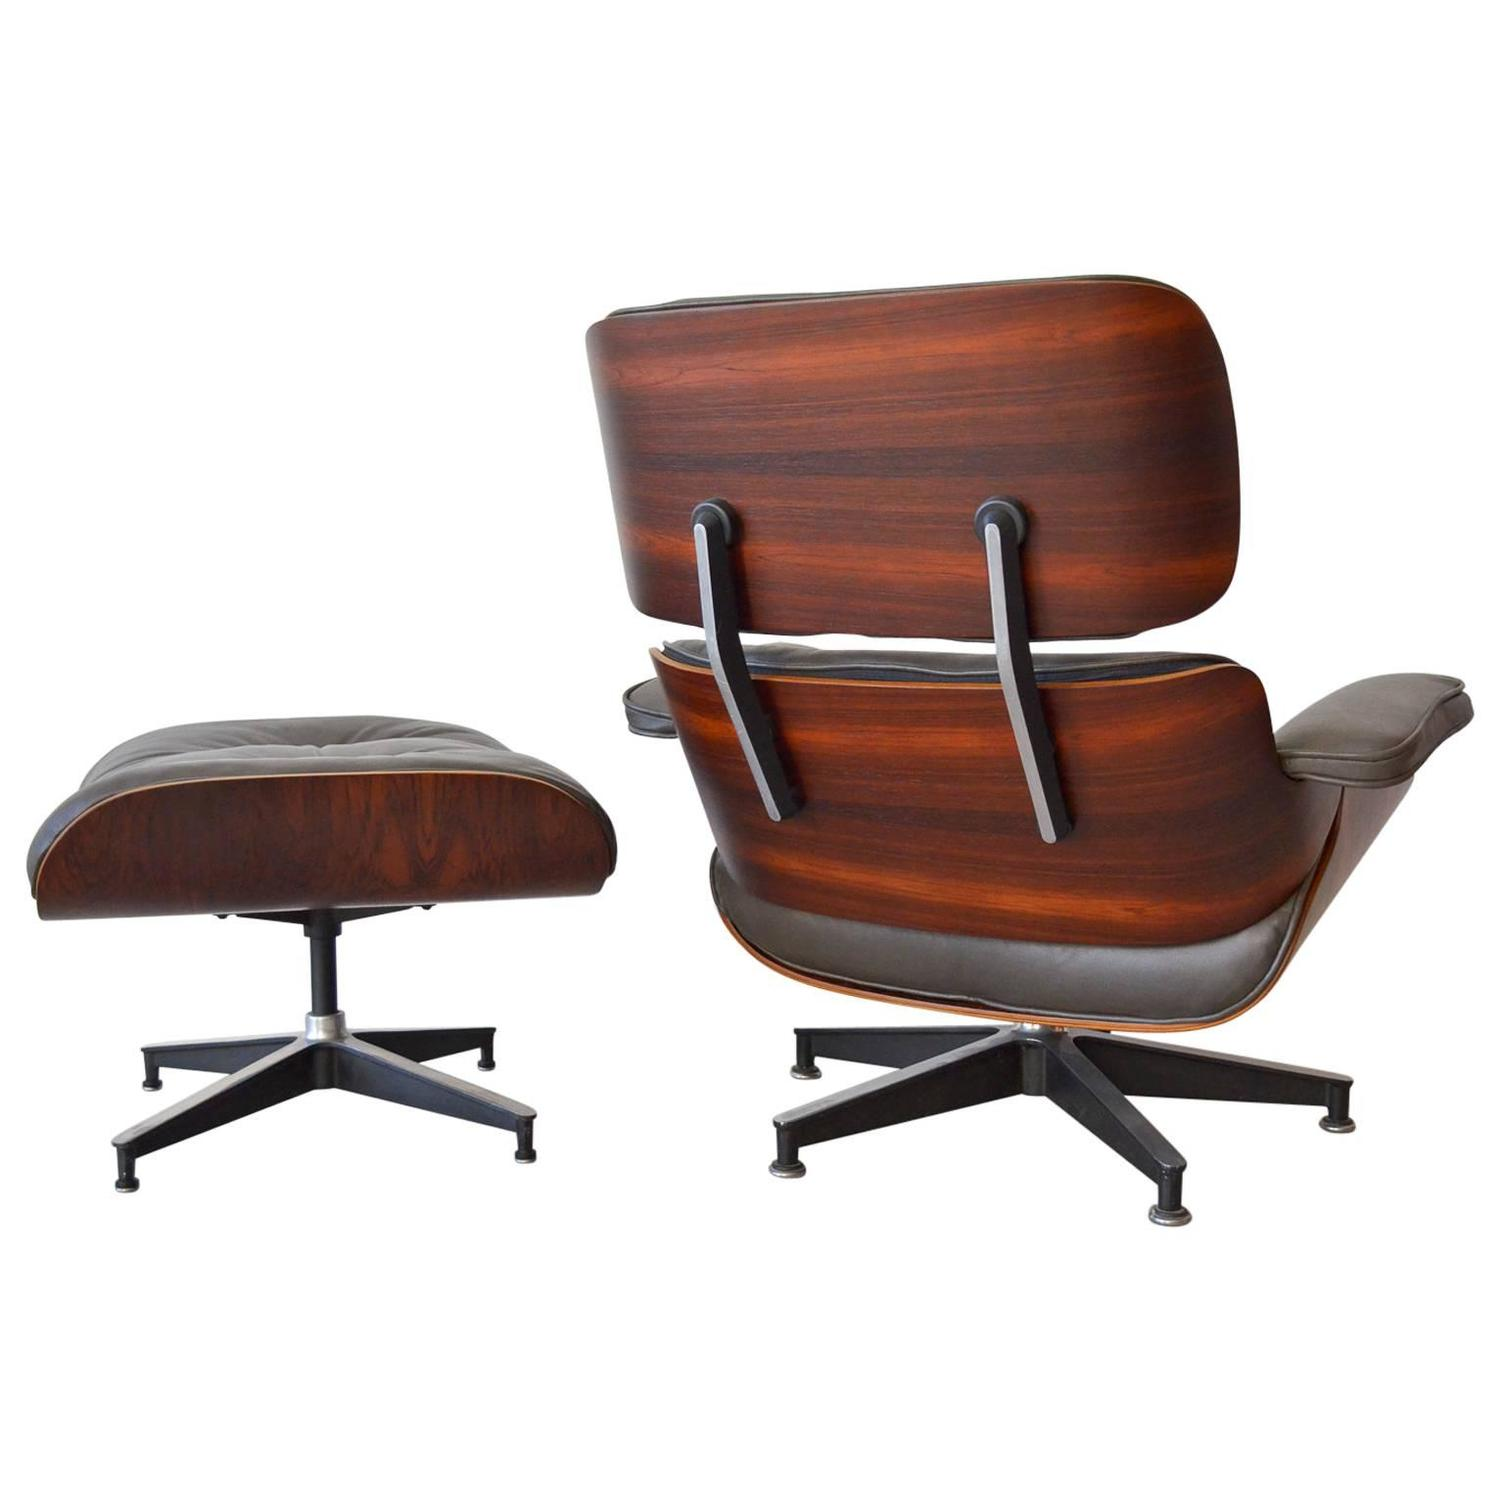 Lounge Chair With Ottoman Rosewood Eames Lounge Chair With Matching Ottoman At 1stdibs